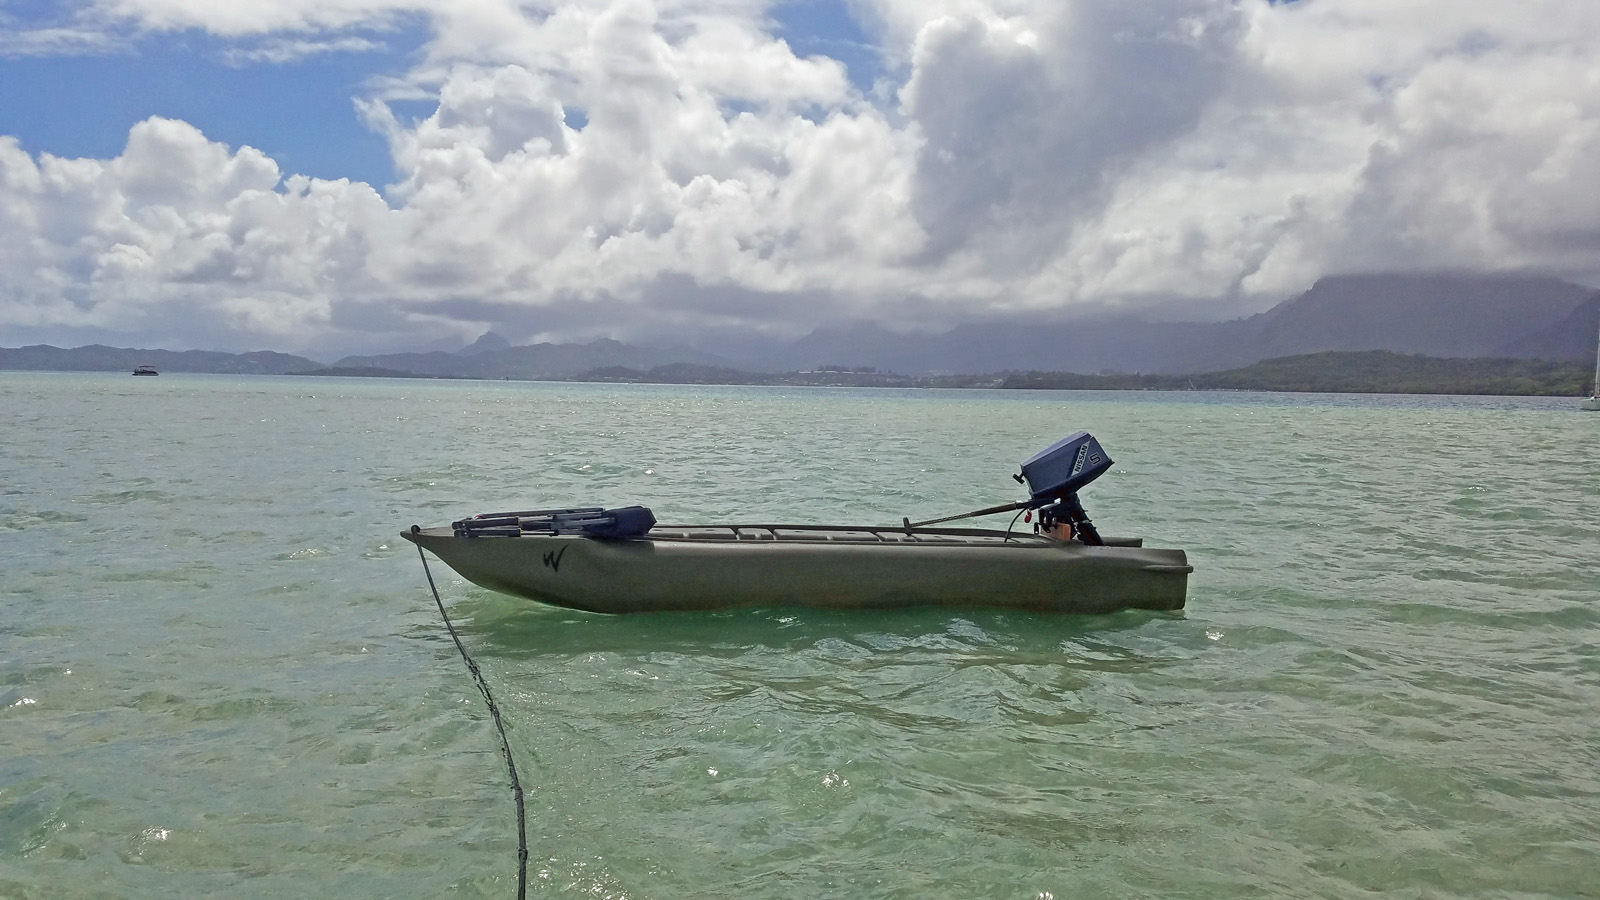 Wavewalk S4 skiff, Hawaii